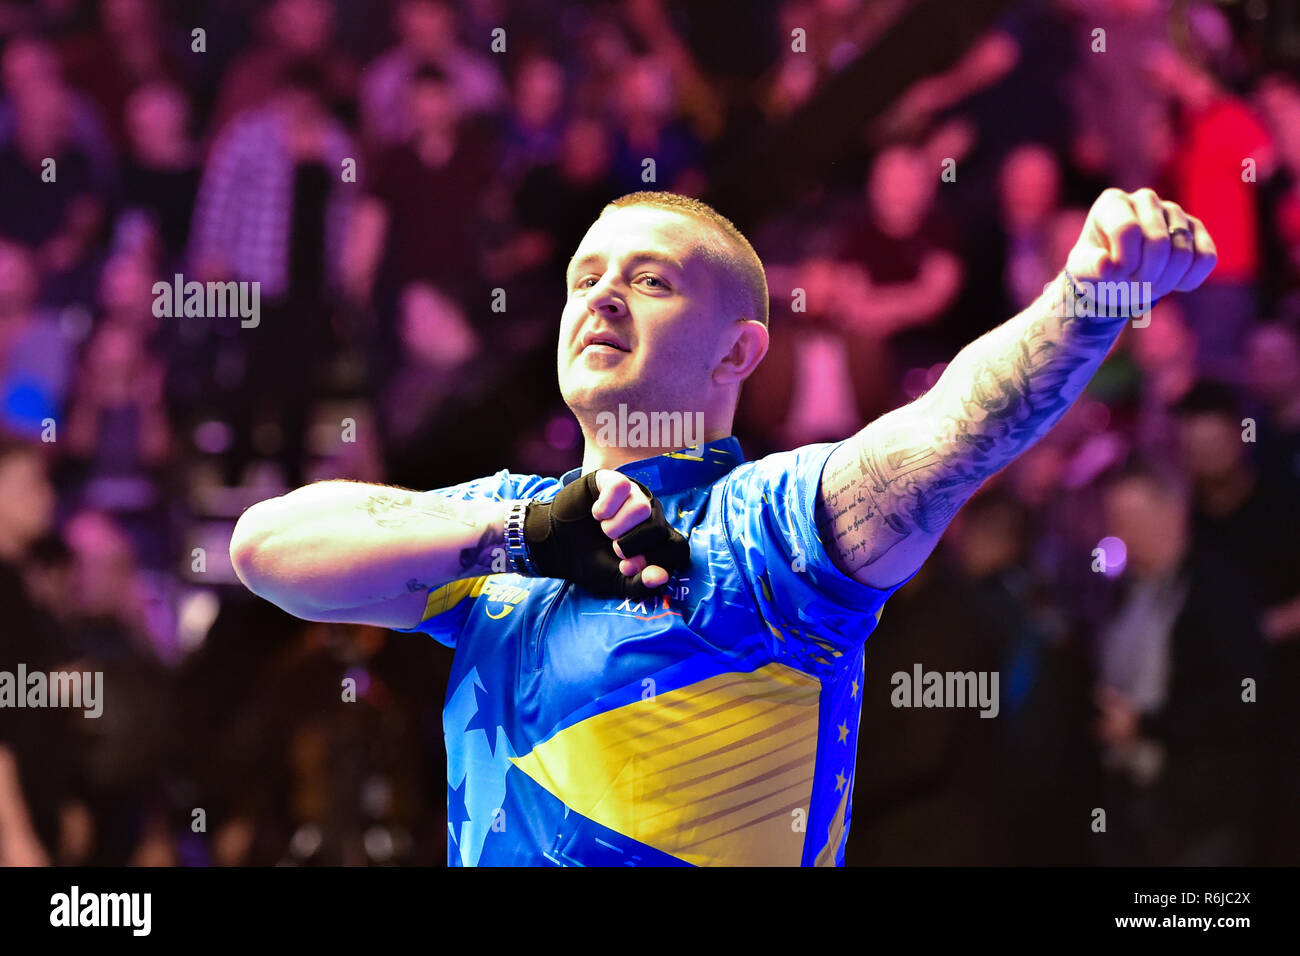 London, UK. 5th Dec, 2018. Jayson Shaw of Scotland during The Partypoker Mosconi Cup 2018: on Day 2 event - Jayson Shaw (SCO) v Shane van Boening (USA) at Alexandra Palace on Wednesday, 05 December 2018. LONDON, ENGLAND. (Editorial use only, license required for commercial use. No use in betting, games or a single club/league/player publications.) Credit: Taka Wu/Alamy Live News - Stock Image